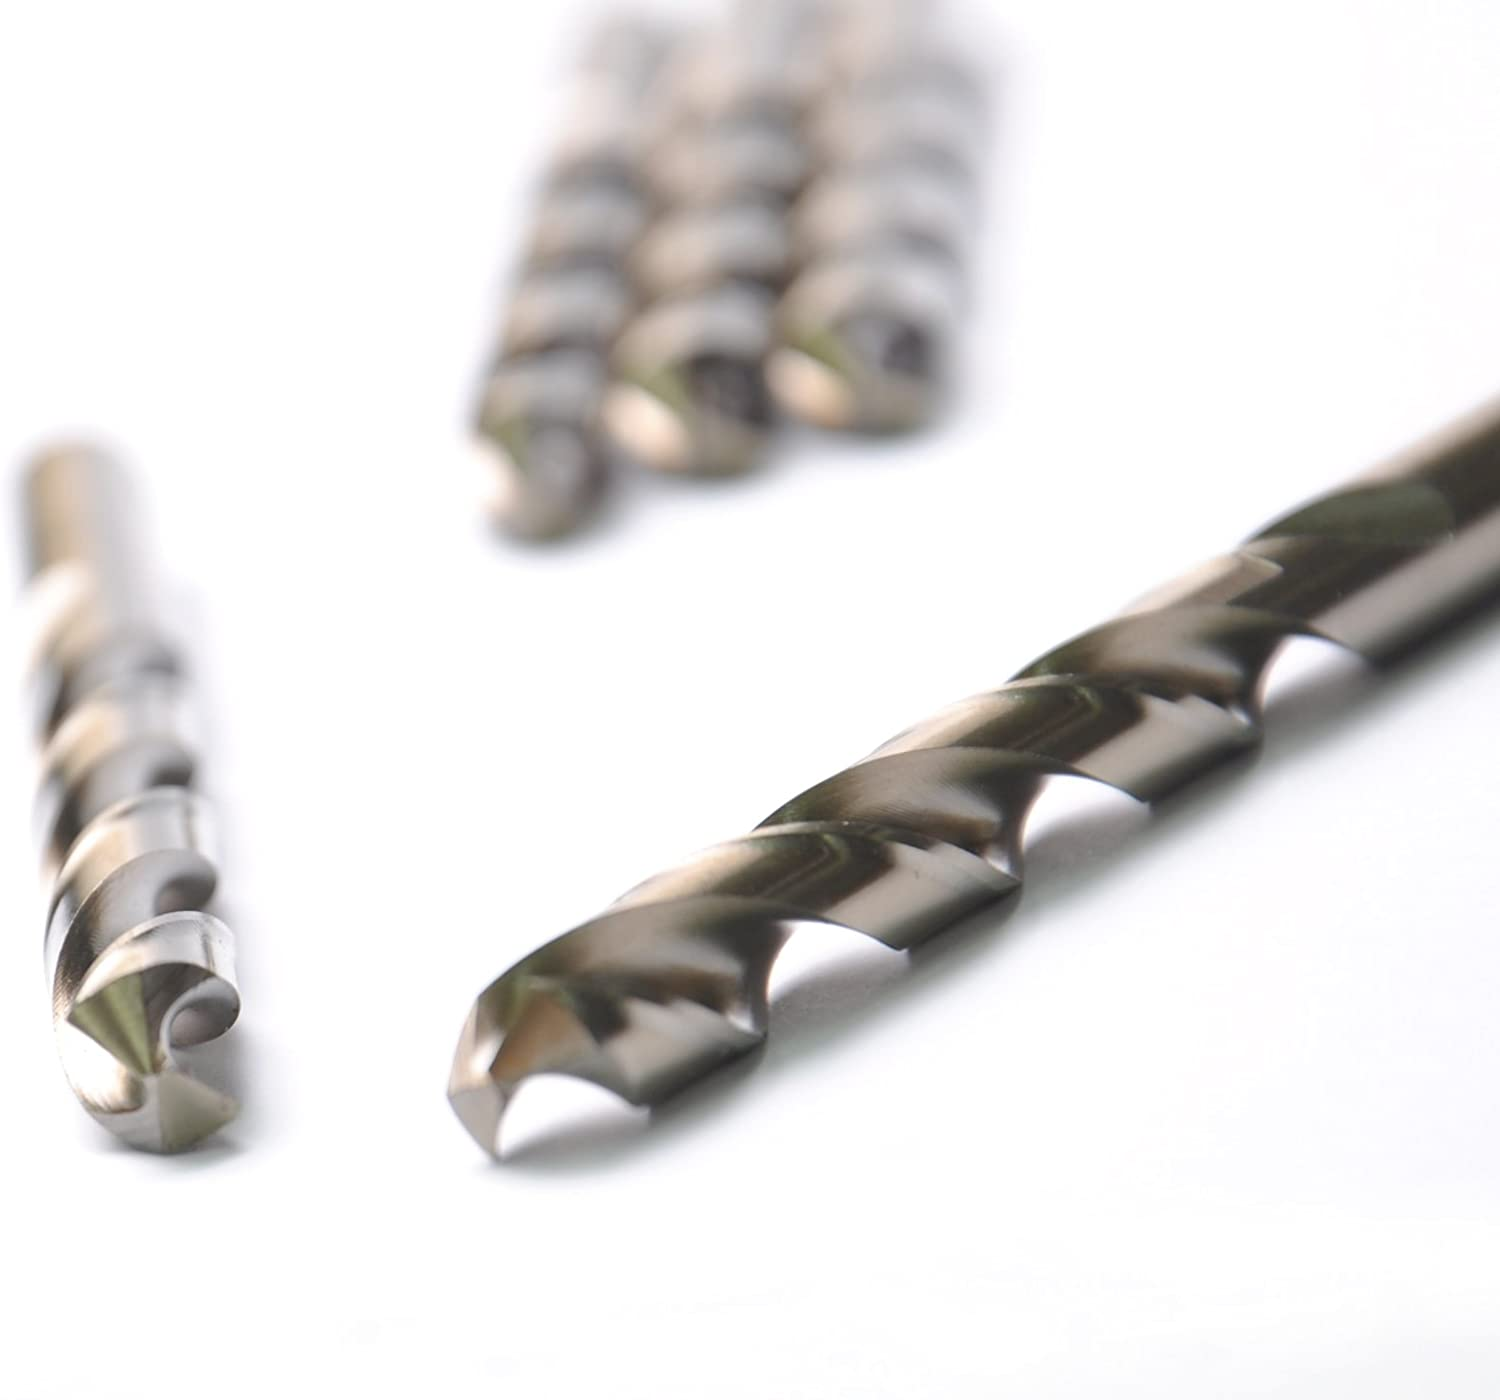 Jobber Length HSS COBALT Drill Bits 10 Pcs DRILLFORCE Aluminum Copper Straight Shank x 3-1//2 in Metal Drill,Ideal For Drilling On Mild Steel Zinc Alloy Etc. 3//16 in